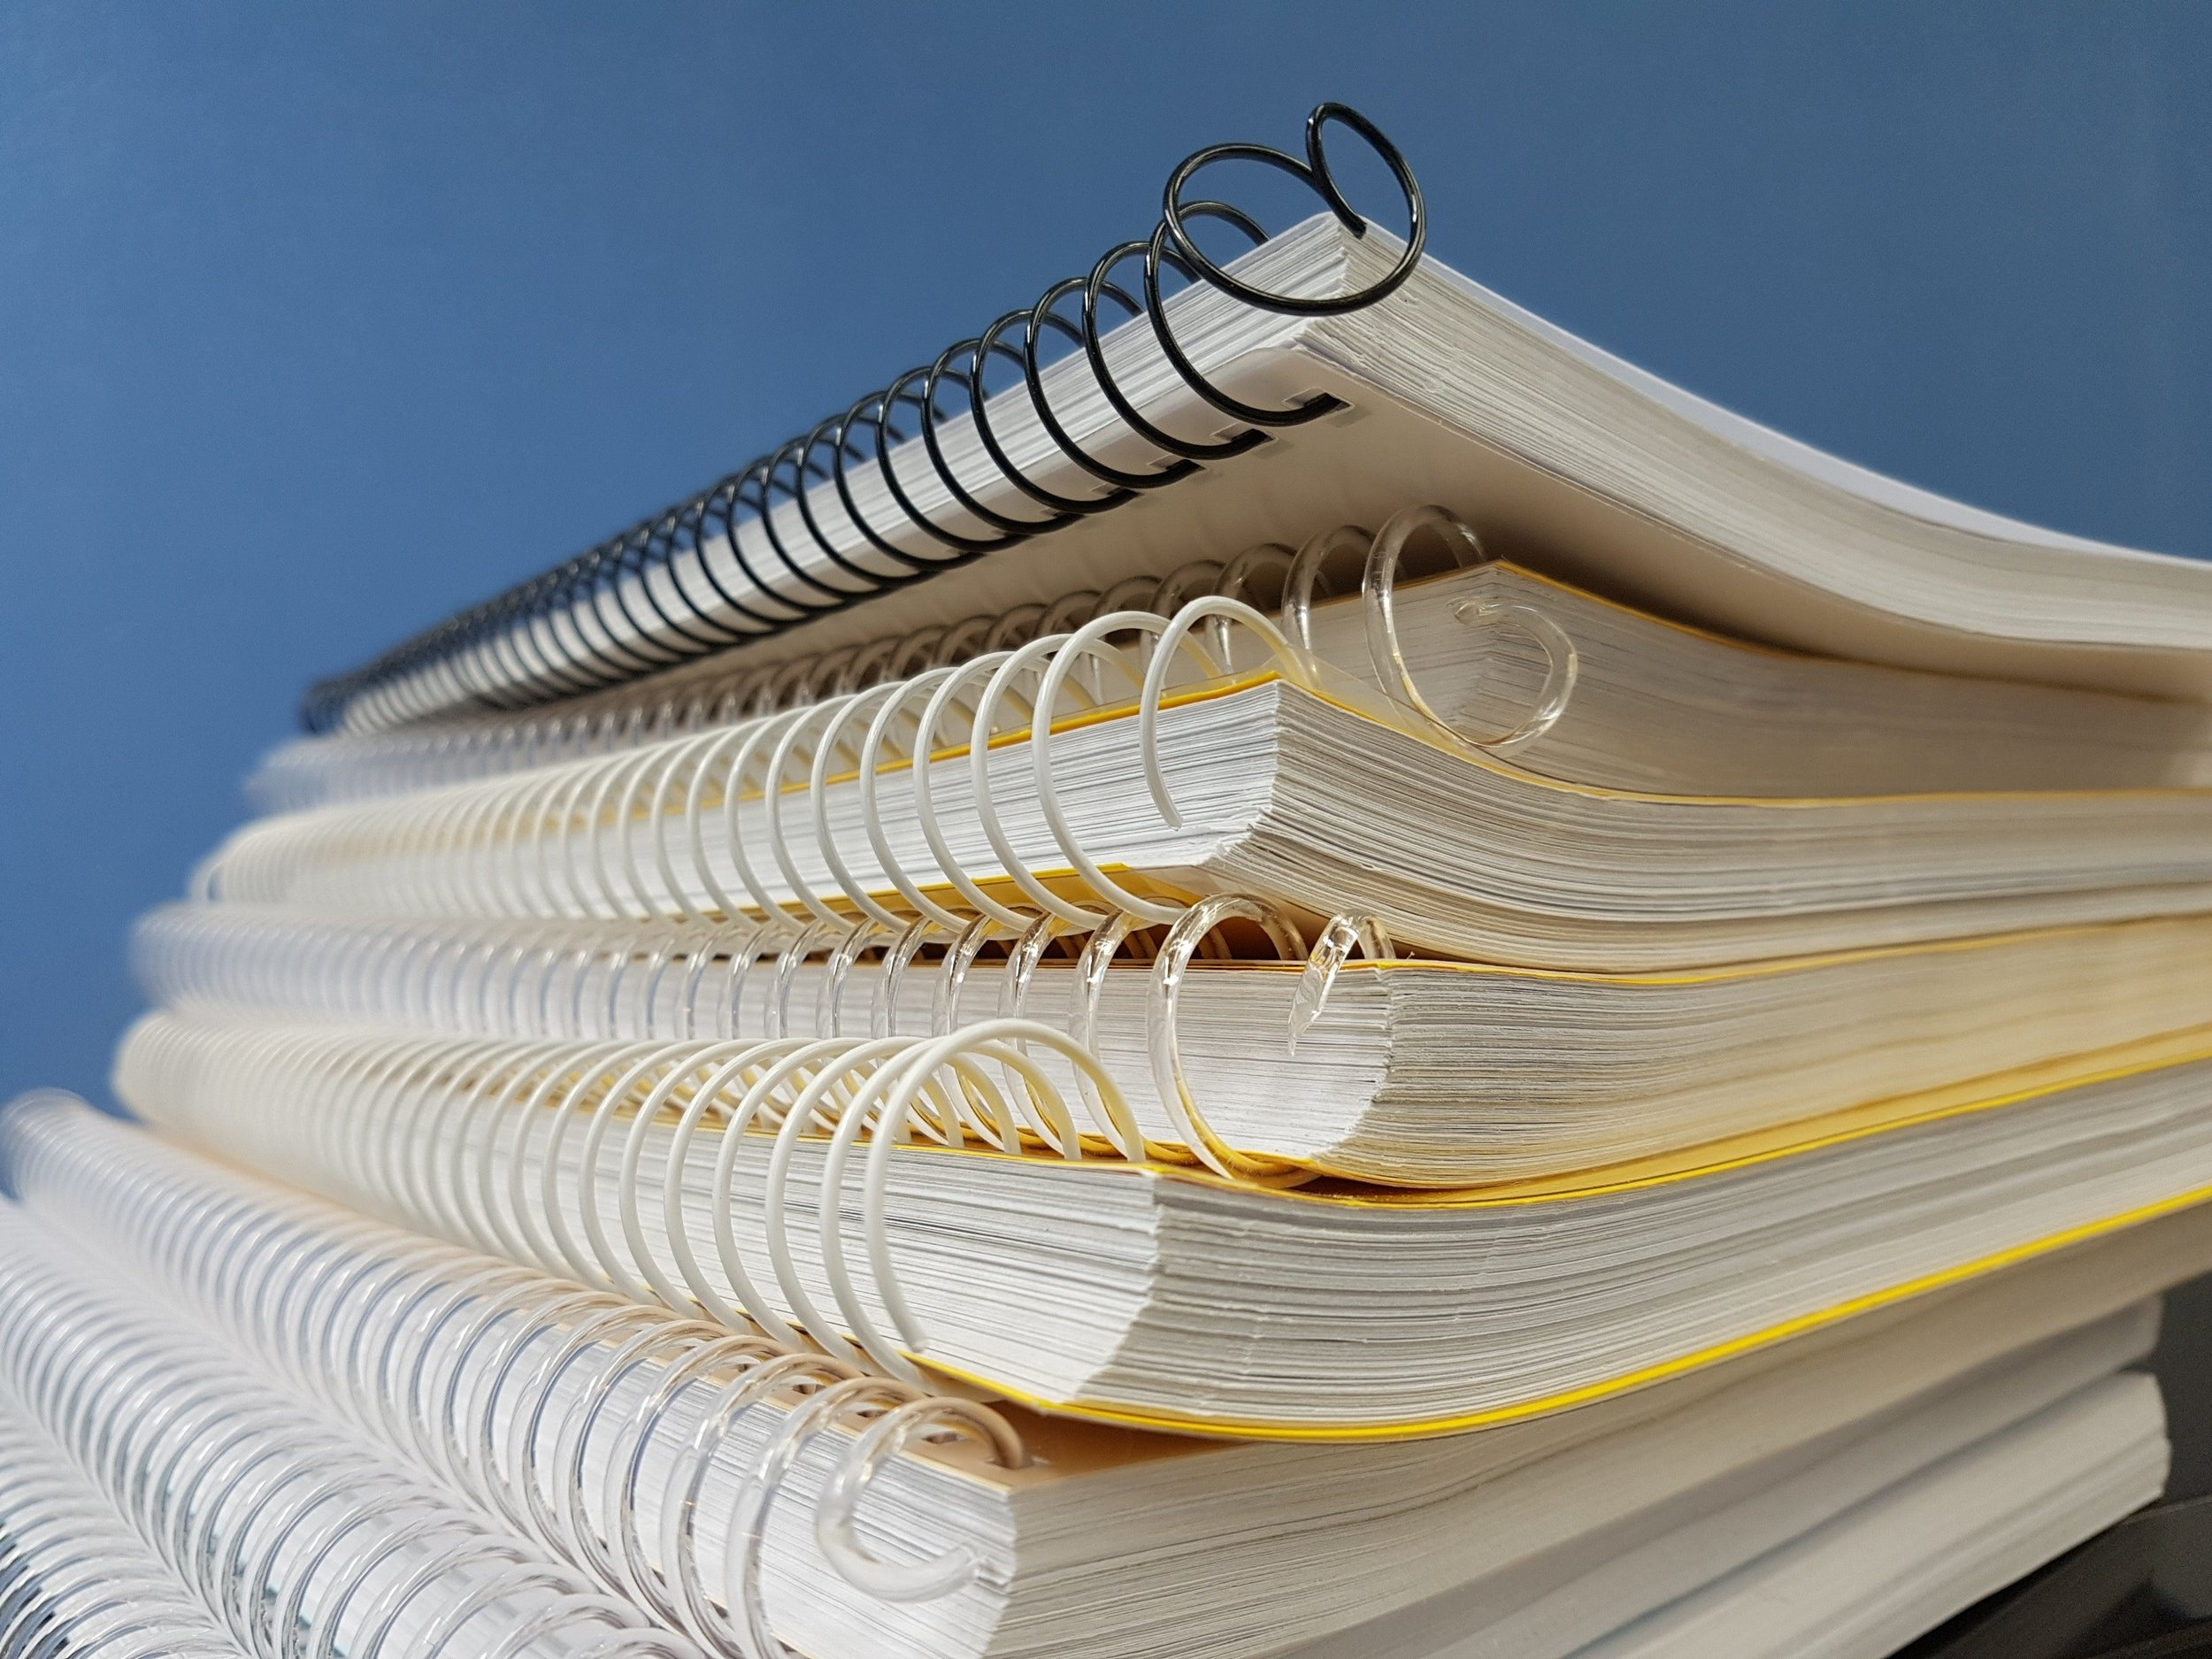 close-up-notebooks-papers-159682.jpg